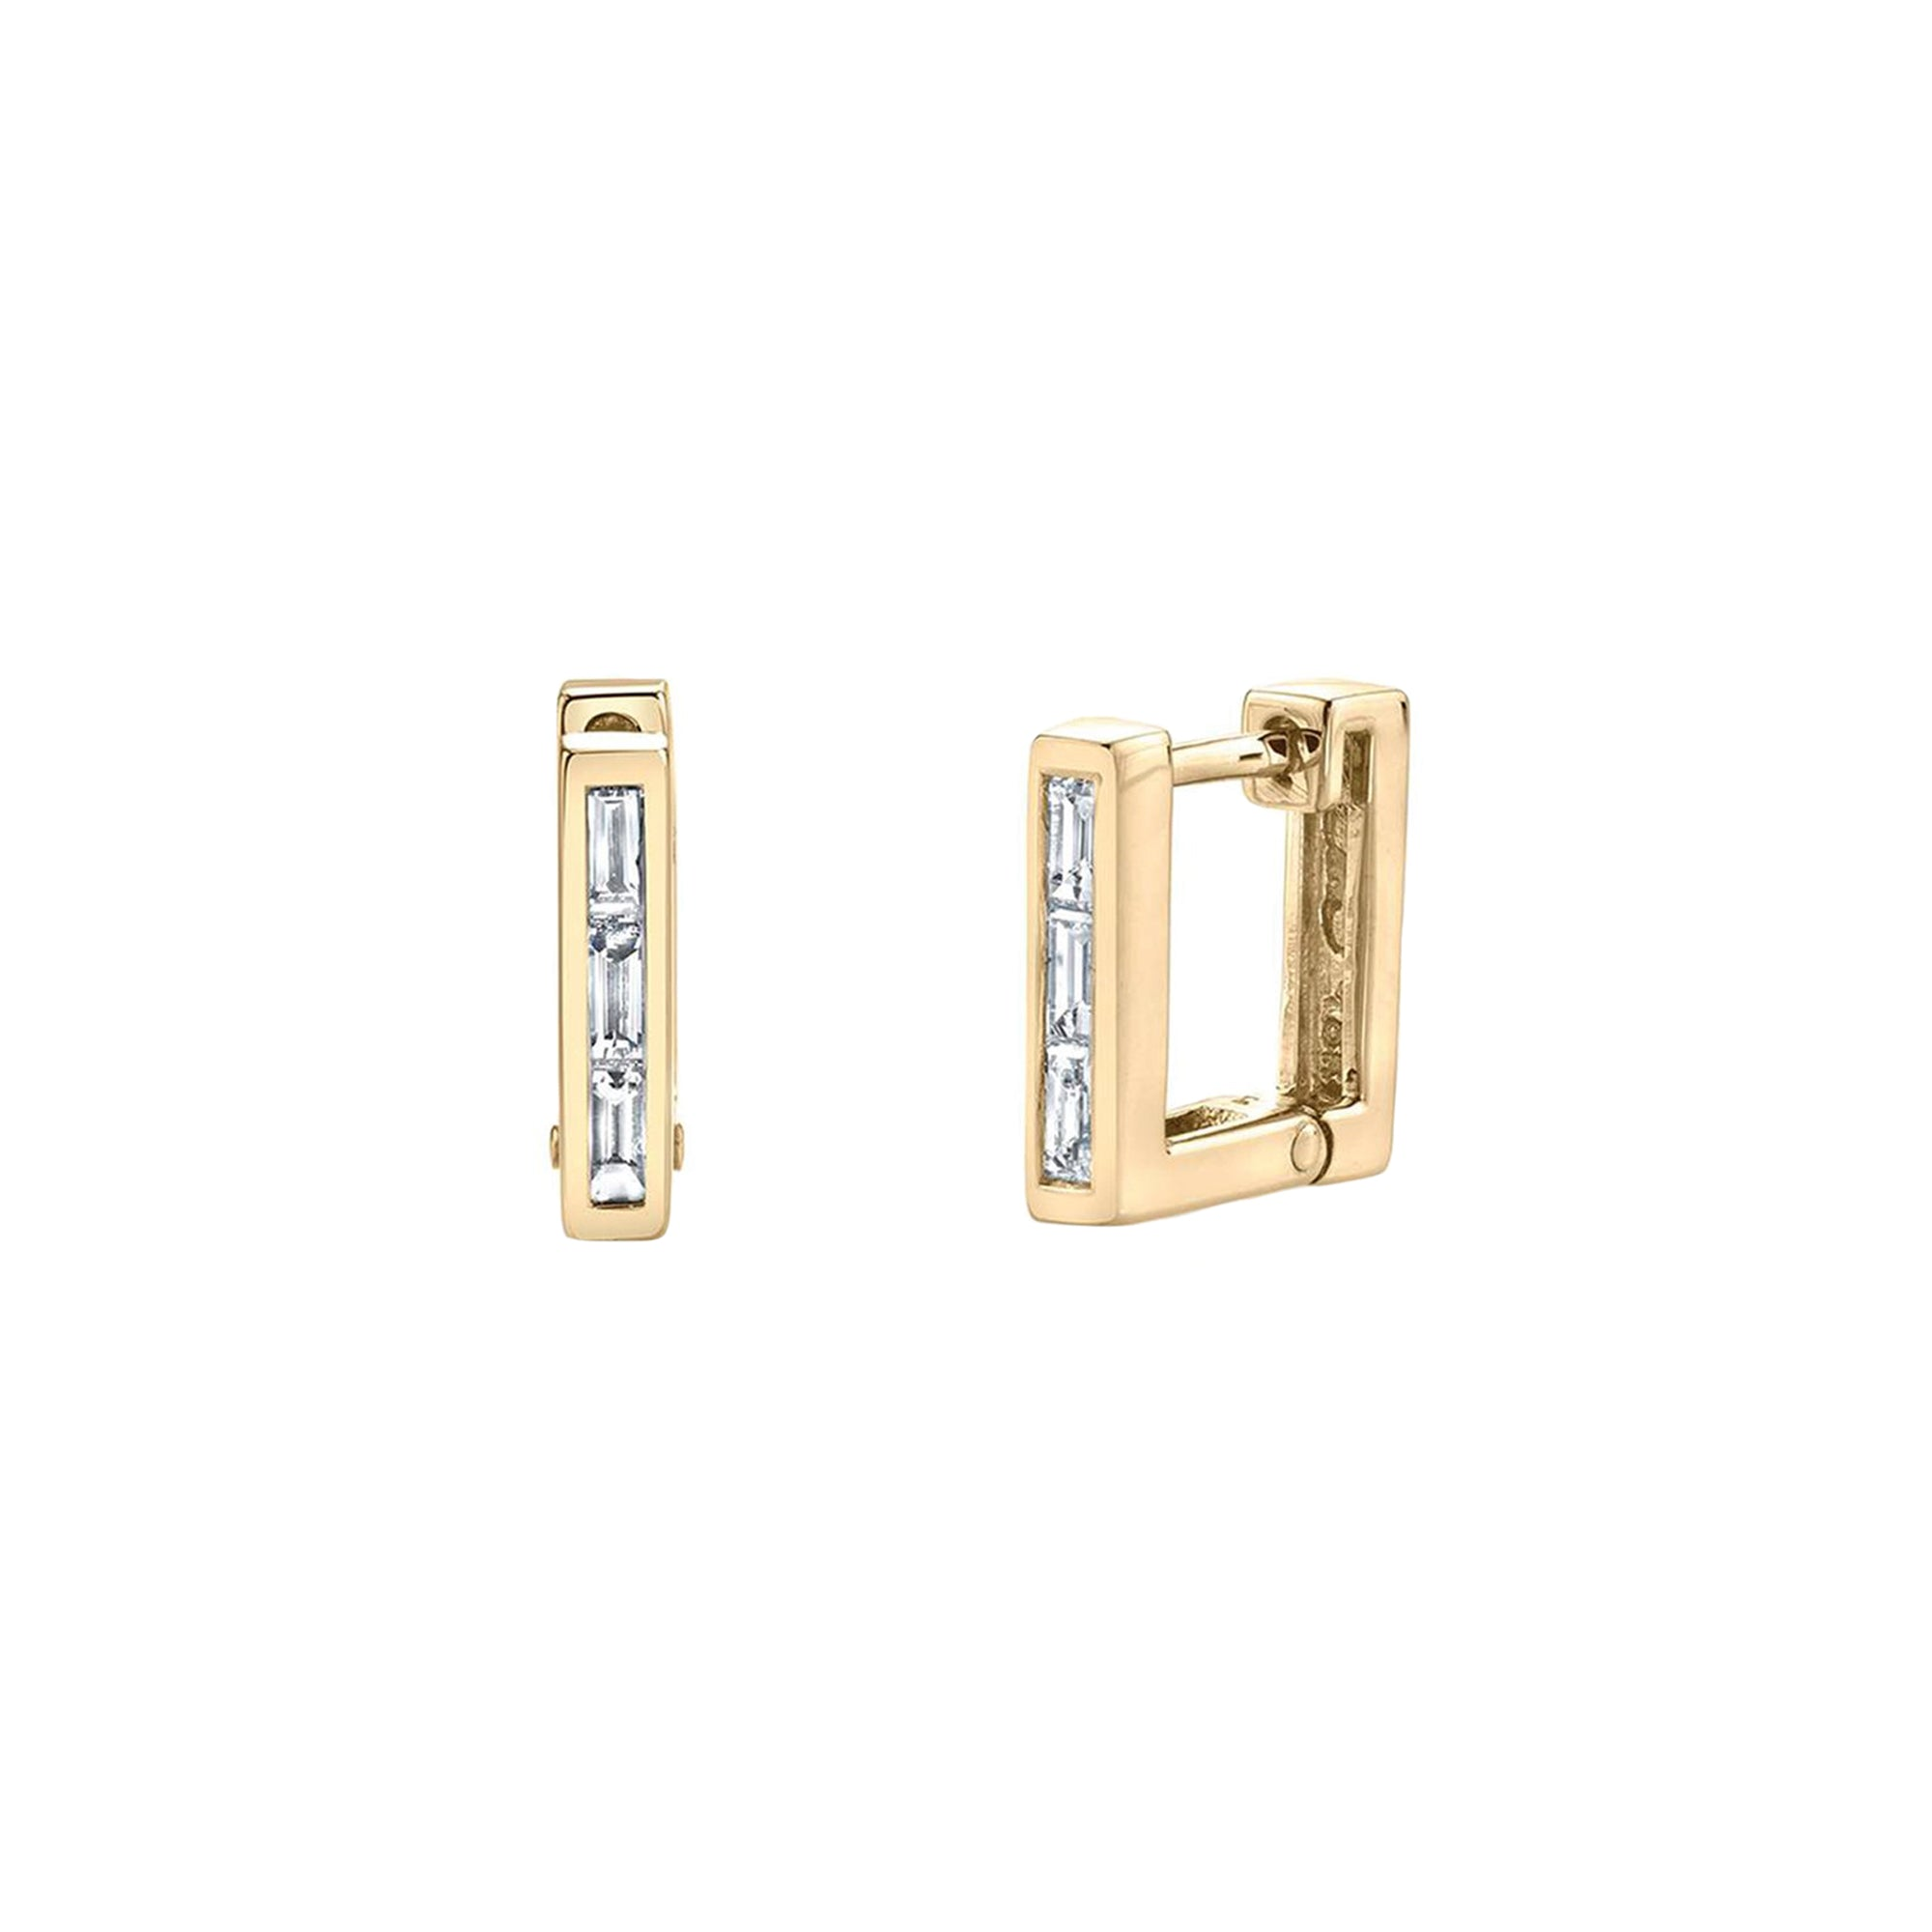 Lizzie Mandler Baguette Diamond Square Huggies - Earrings - Broken English Jewelry